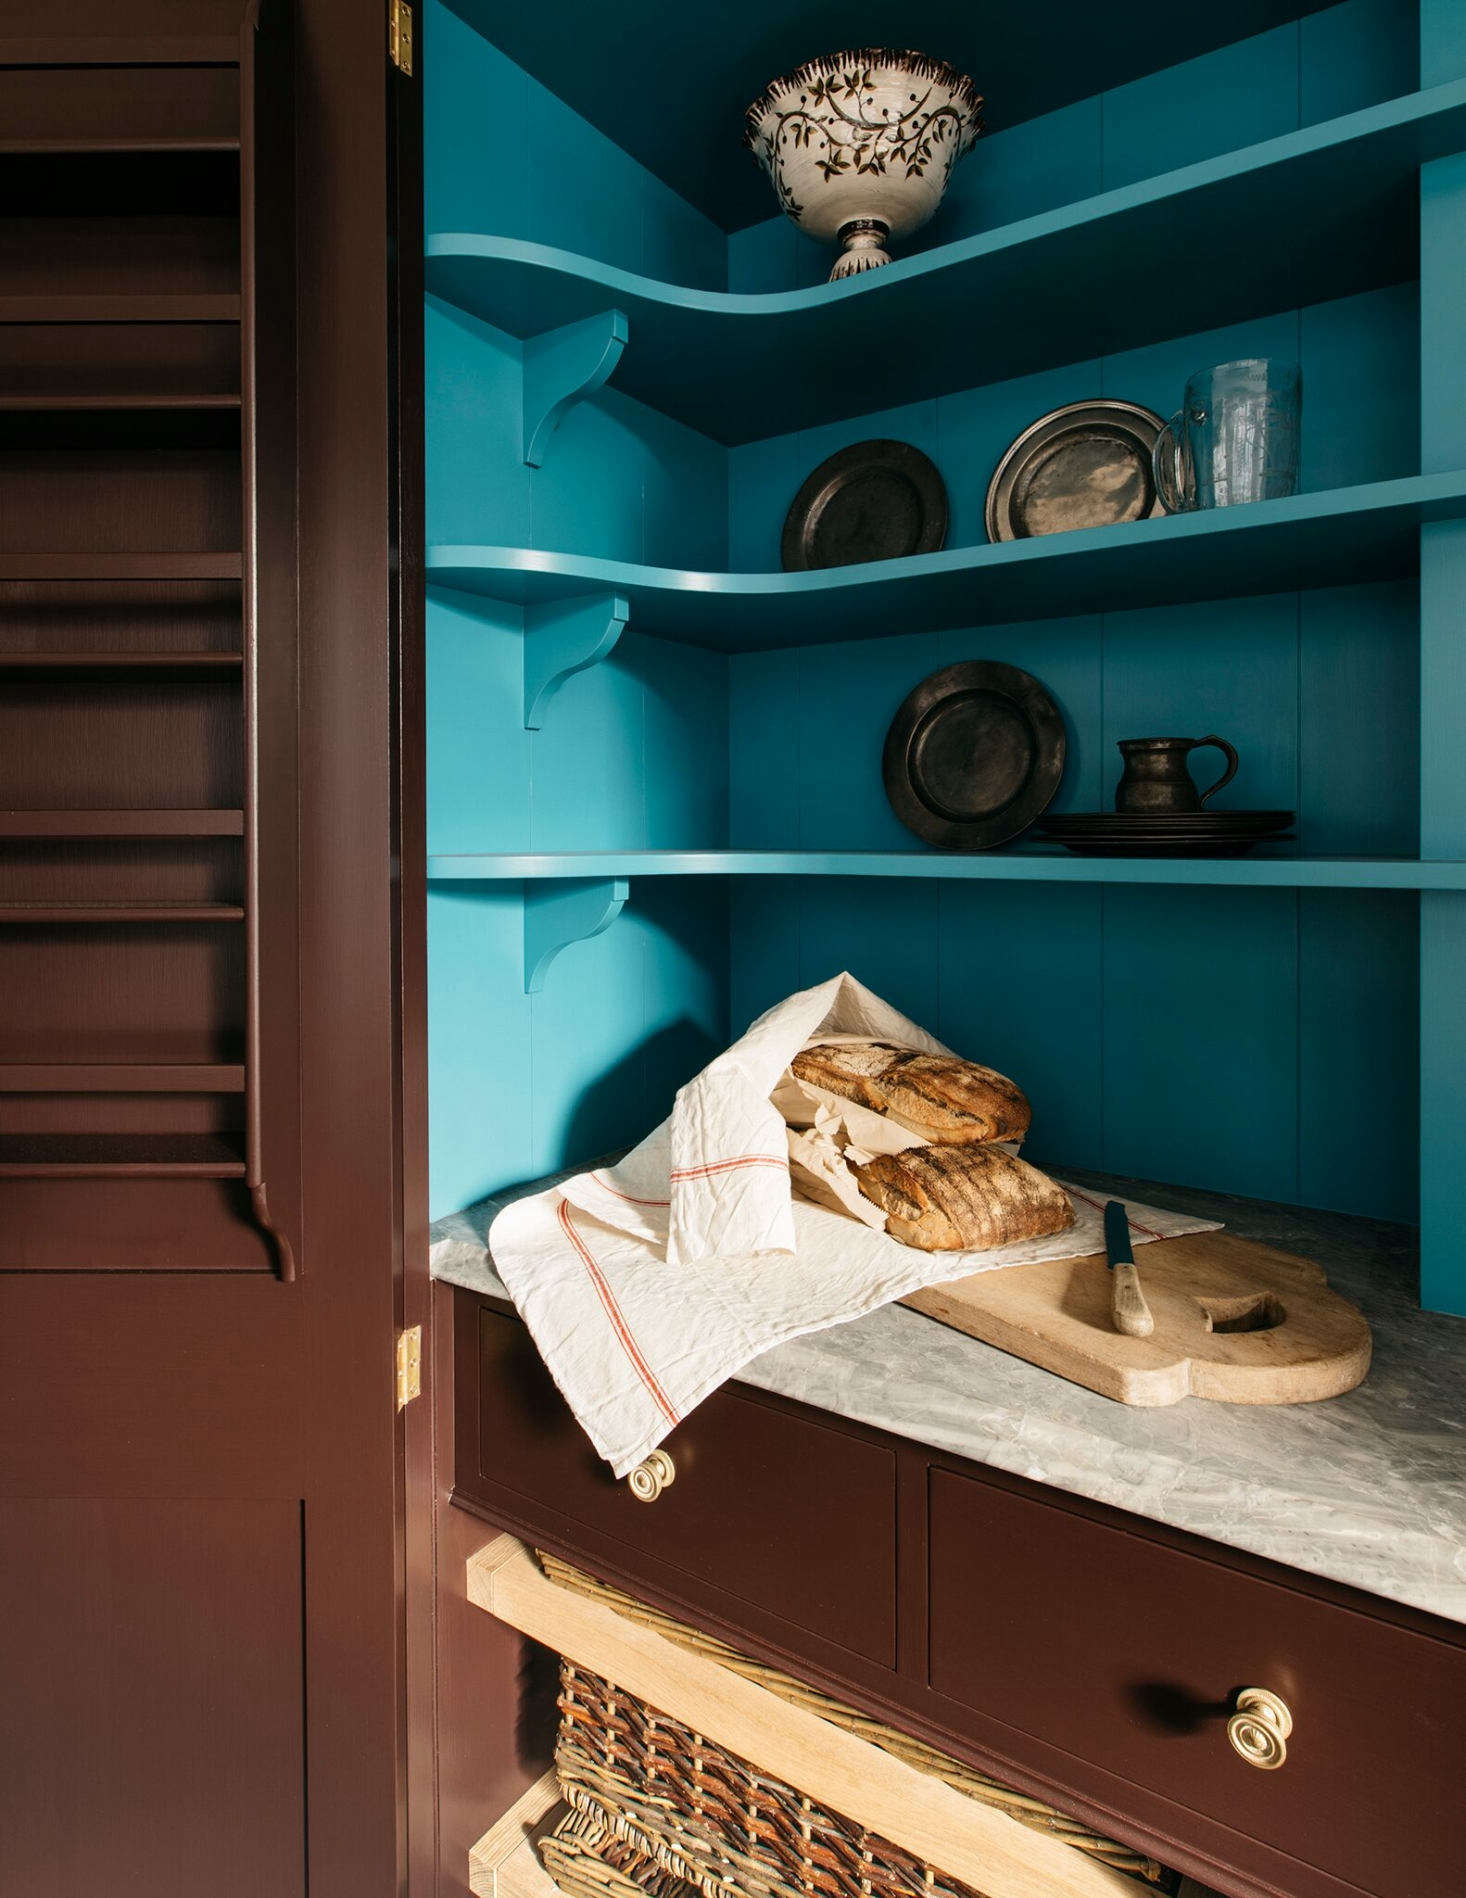 Slide-out baskets, tucked in the lower level of the cupboard, are ideal for fruit and veg storage.